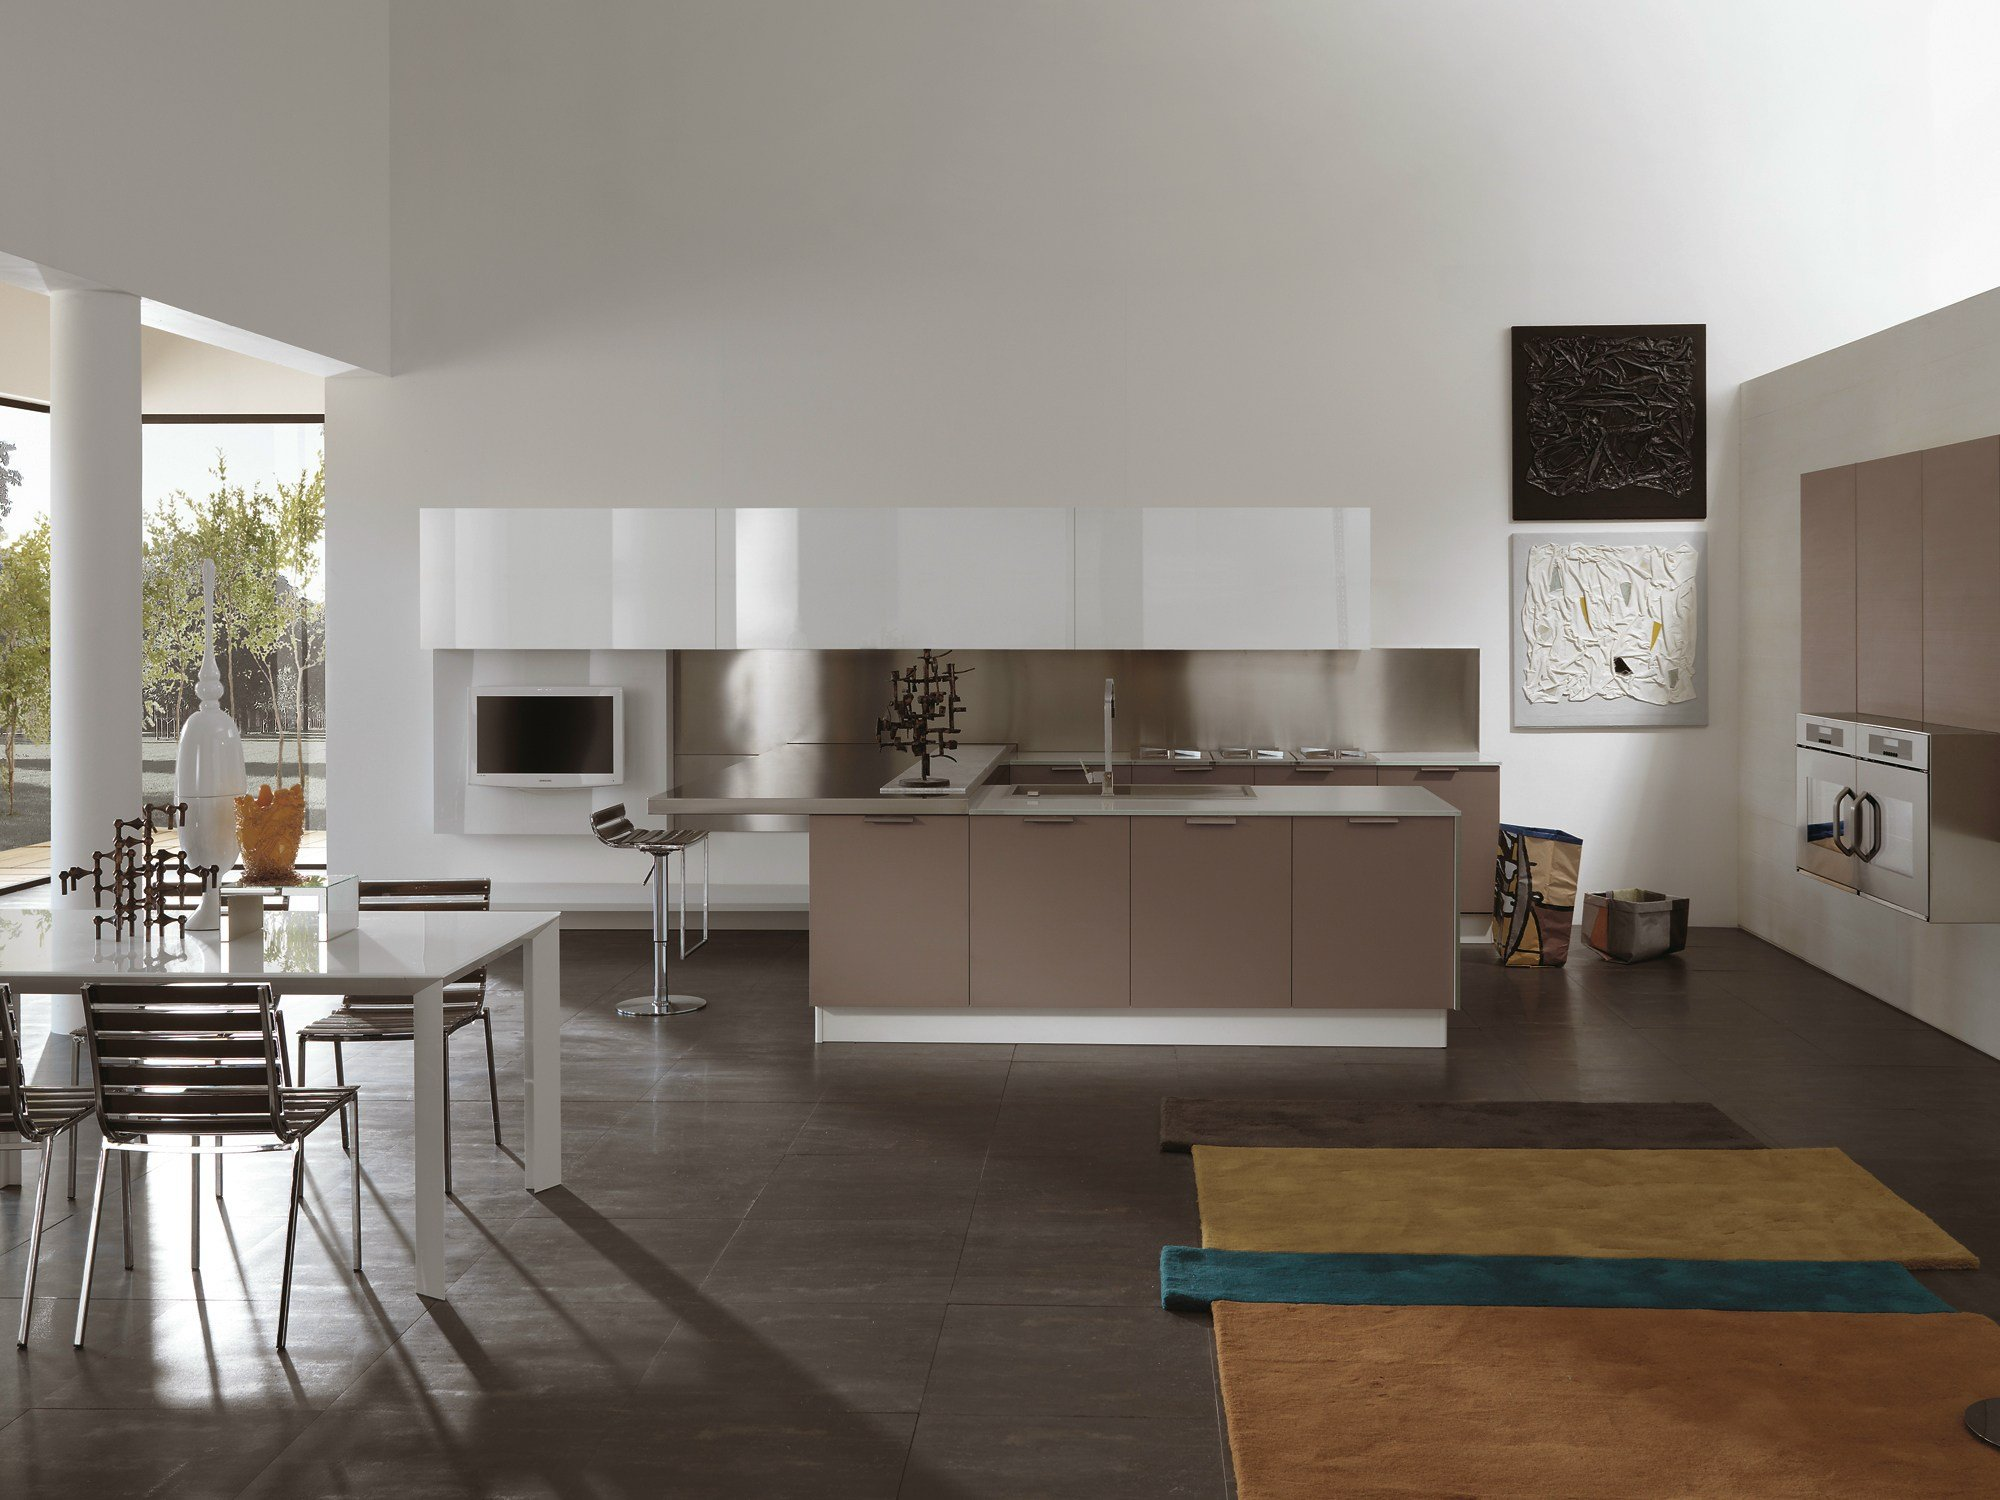 Atelier kitchen with peninsula by aster cucine - Cucine a penisola ...